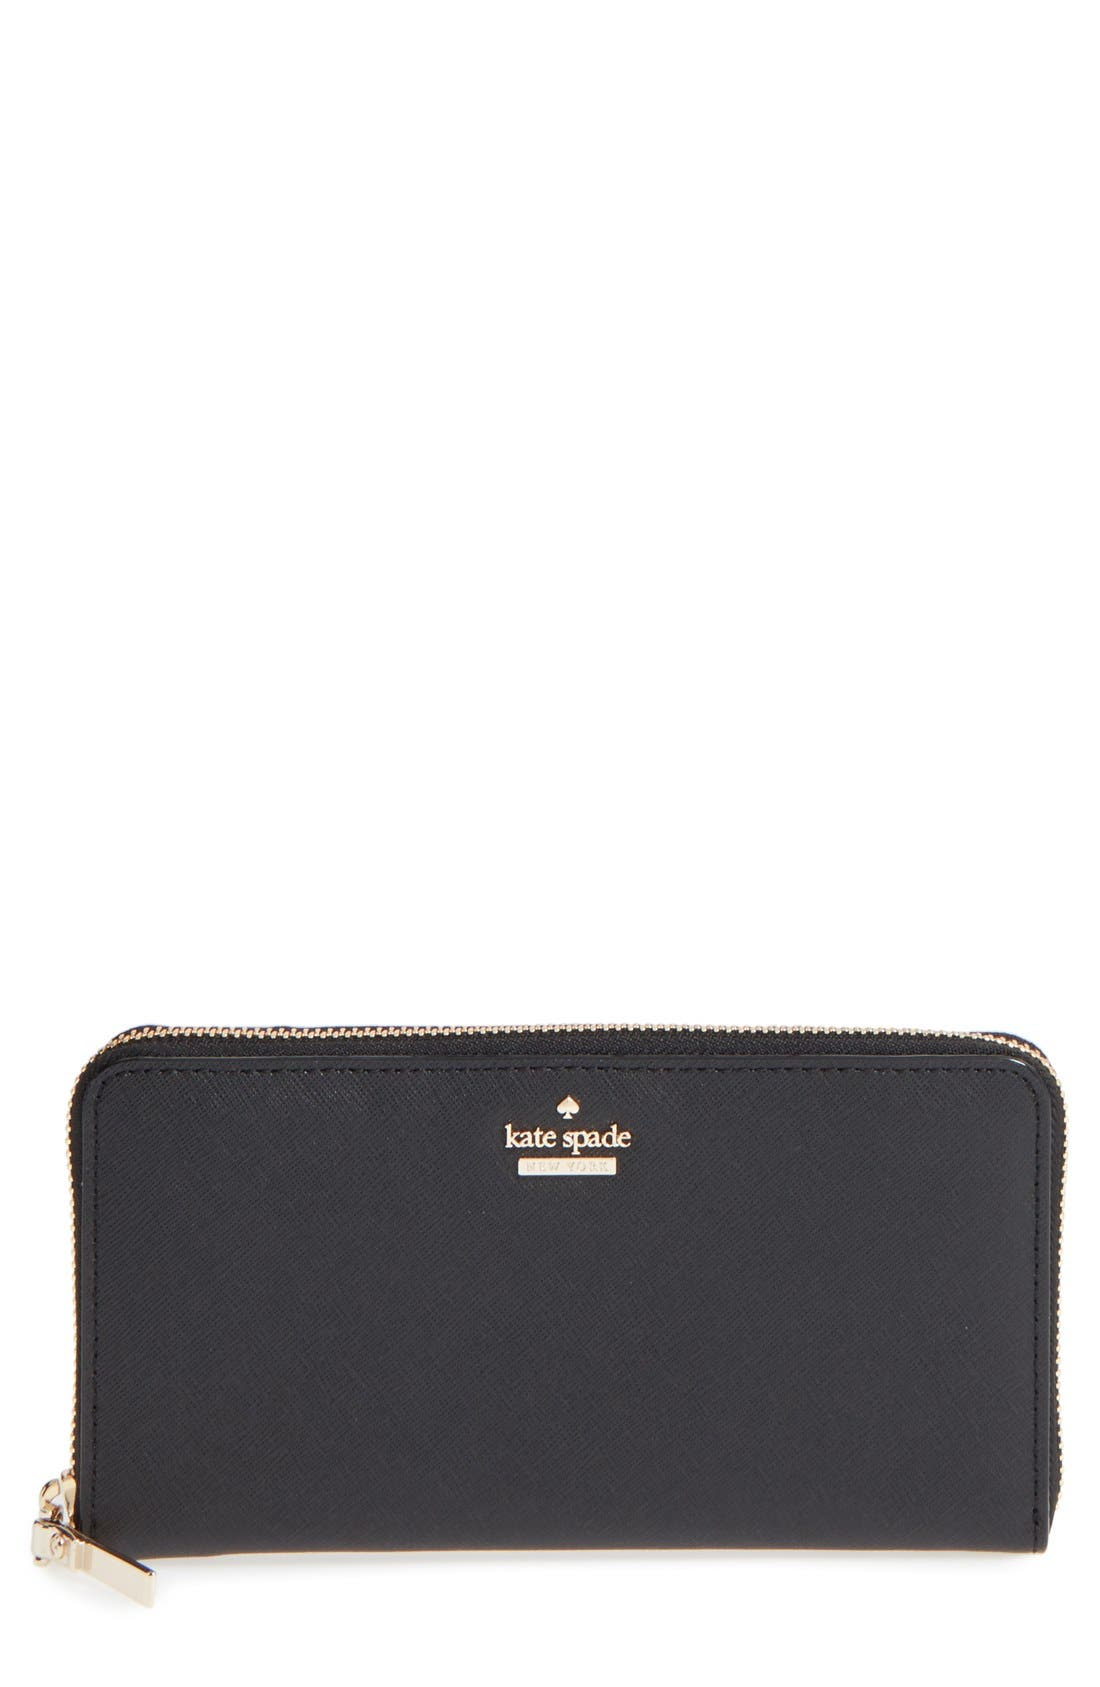 'cameron street - lacey' leather wallet,                         Main,                         color, Black